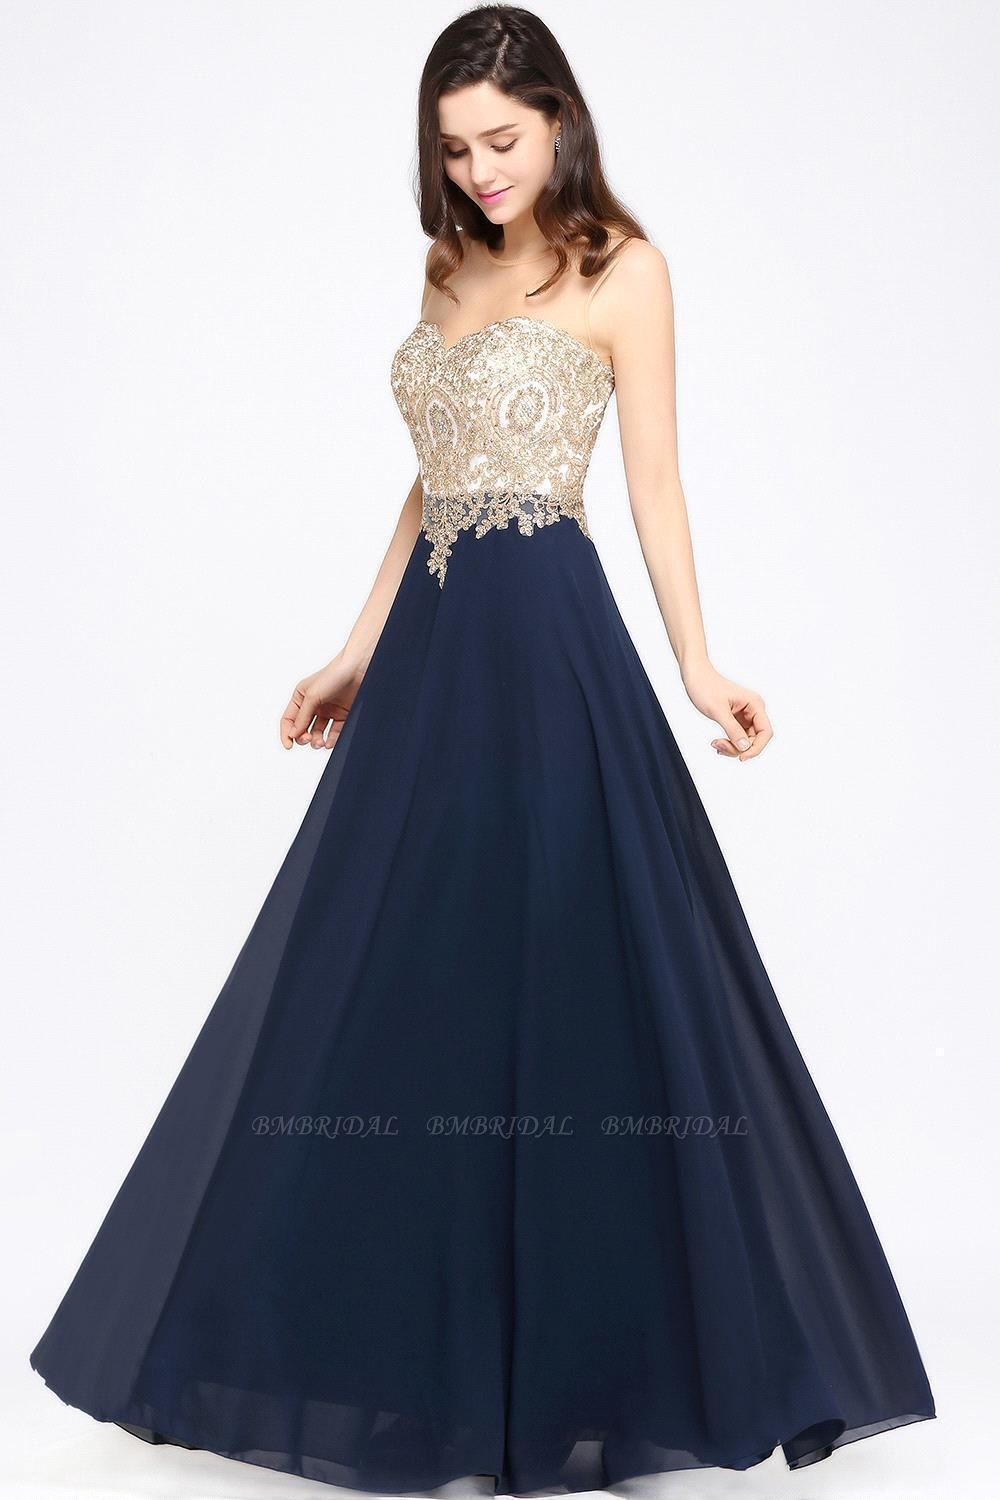 BMbridal Sheer Tulle A-line Chiffon Beads Lace Appliques Sleeveless Long Evening Dress